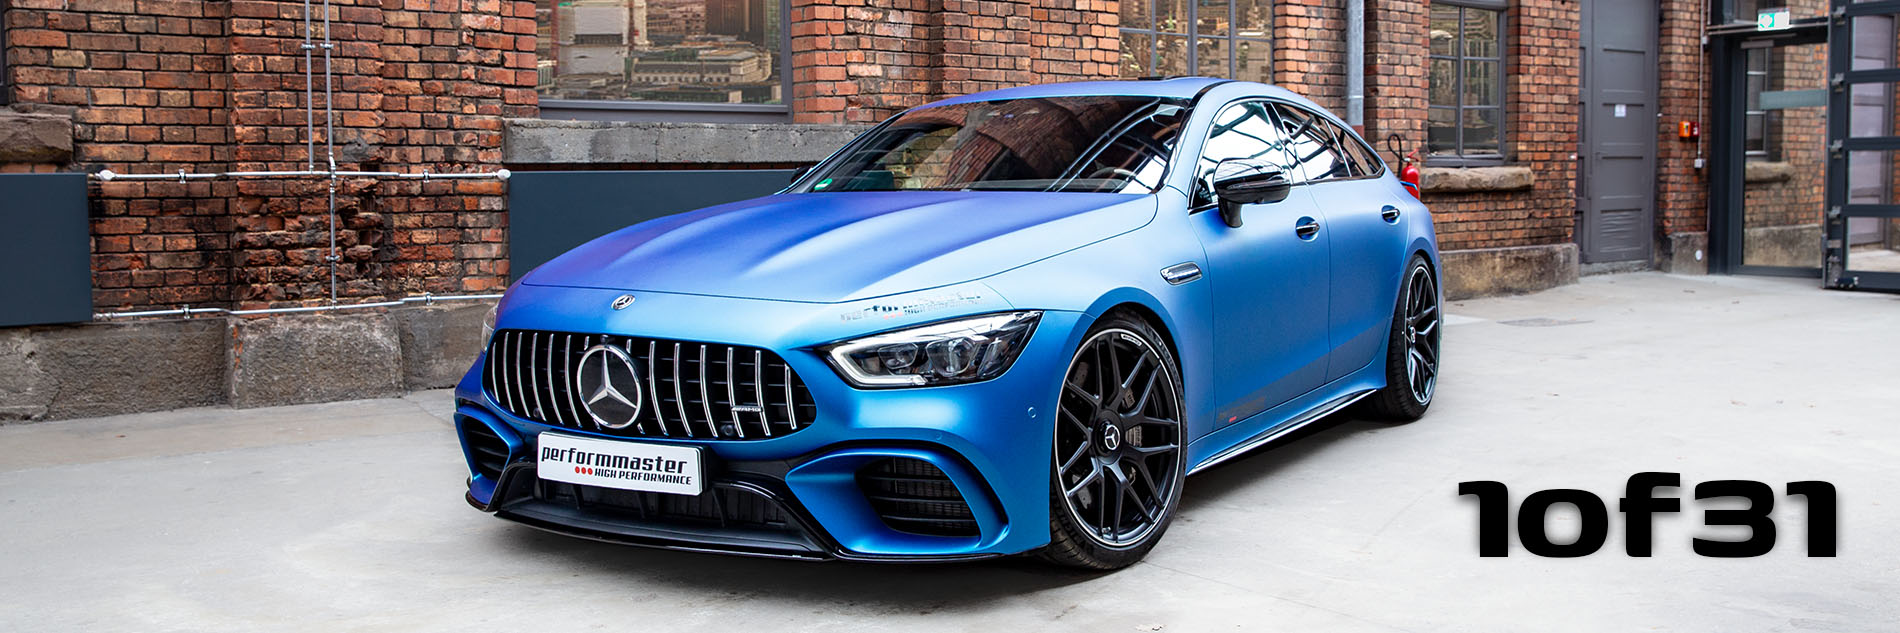 Mercedes-AMG-GT-63-S-1of31